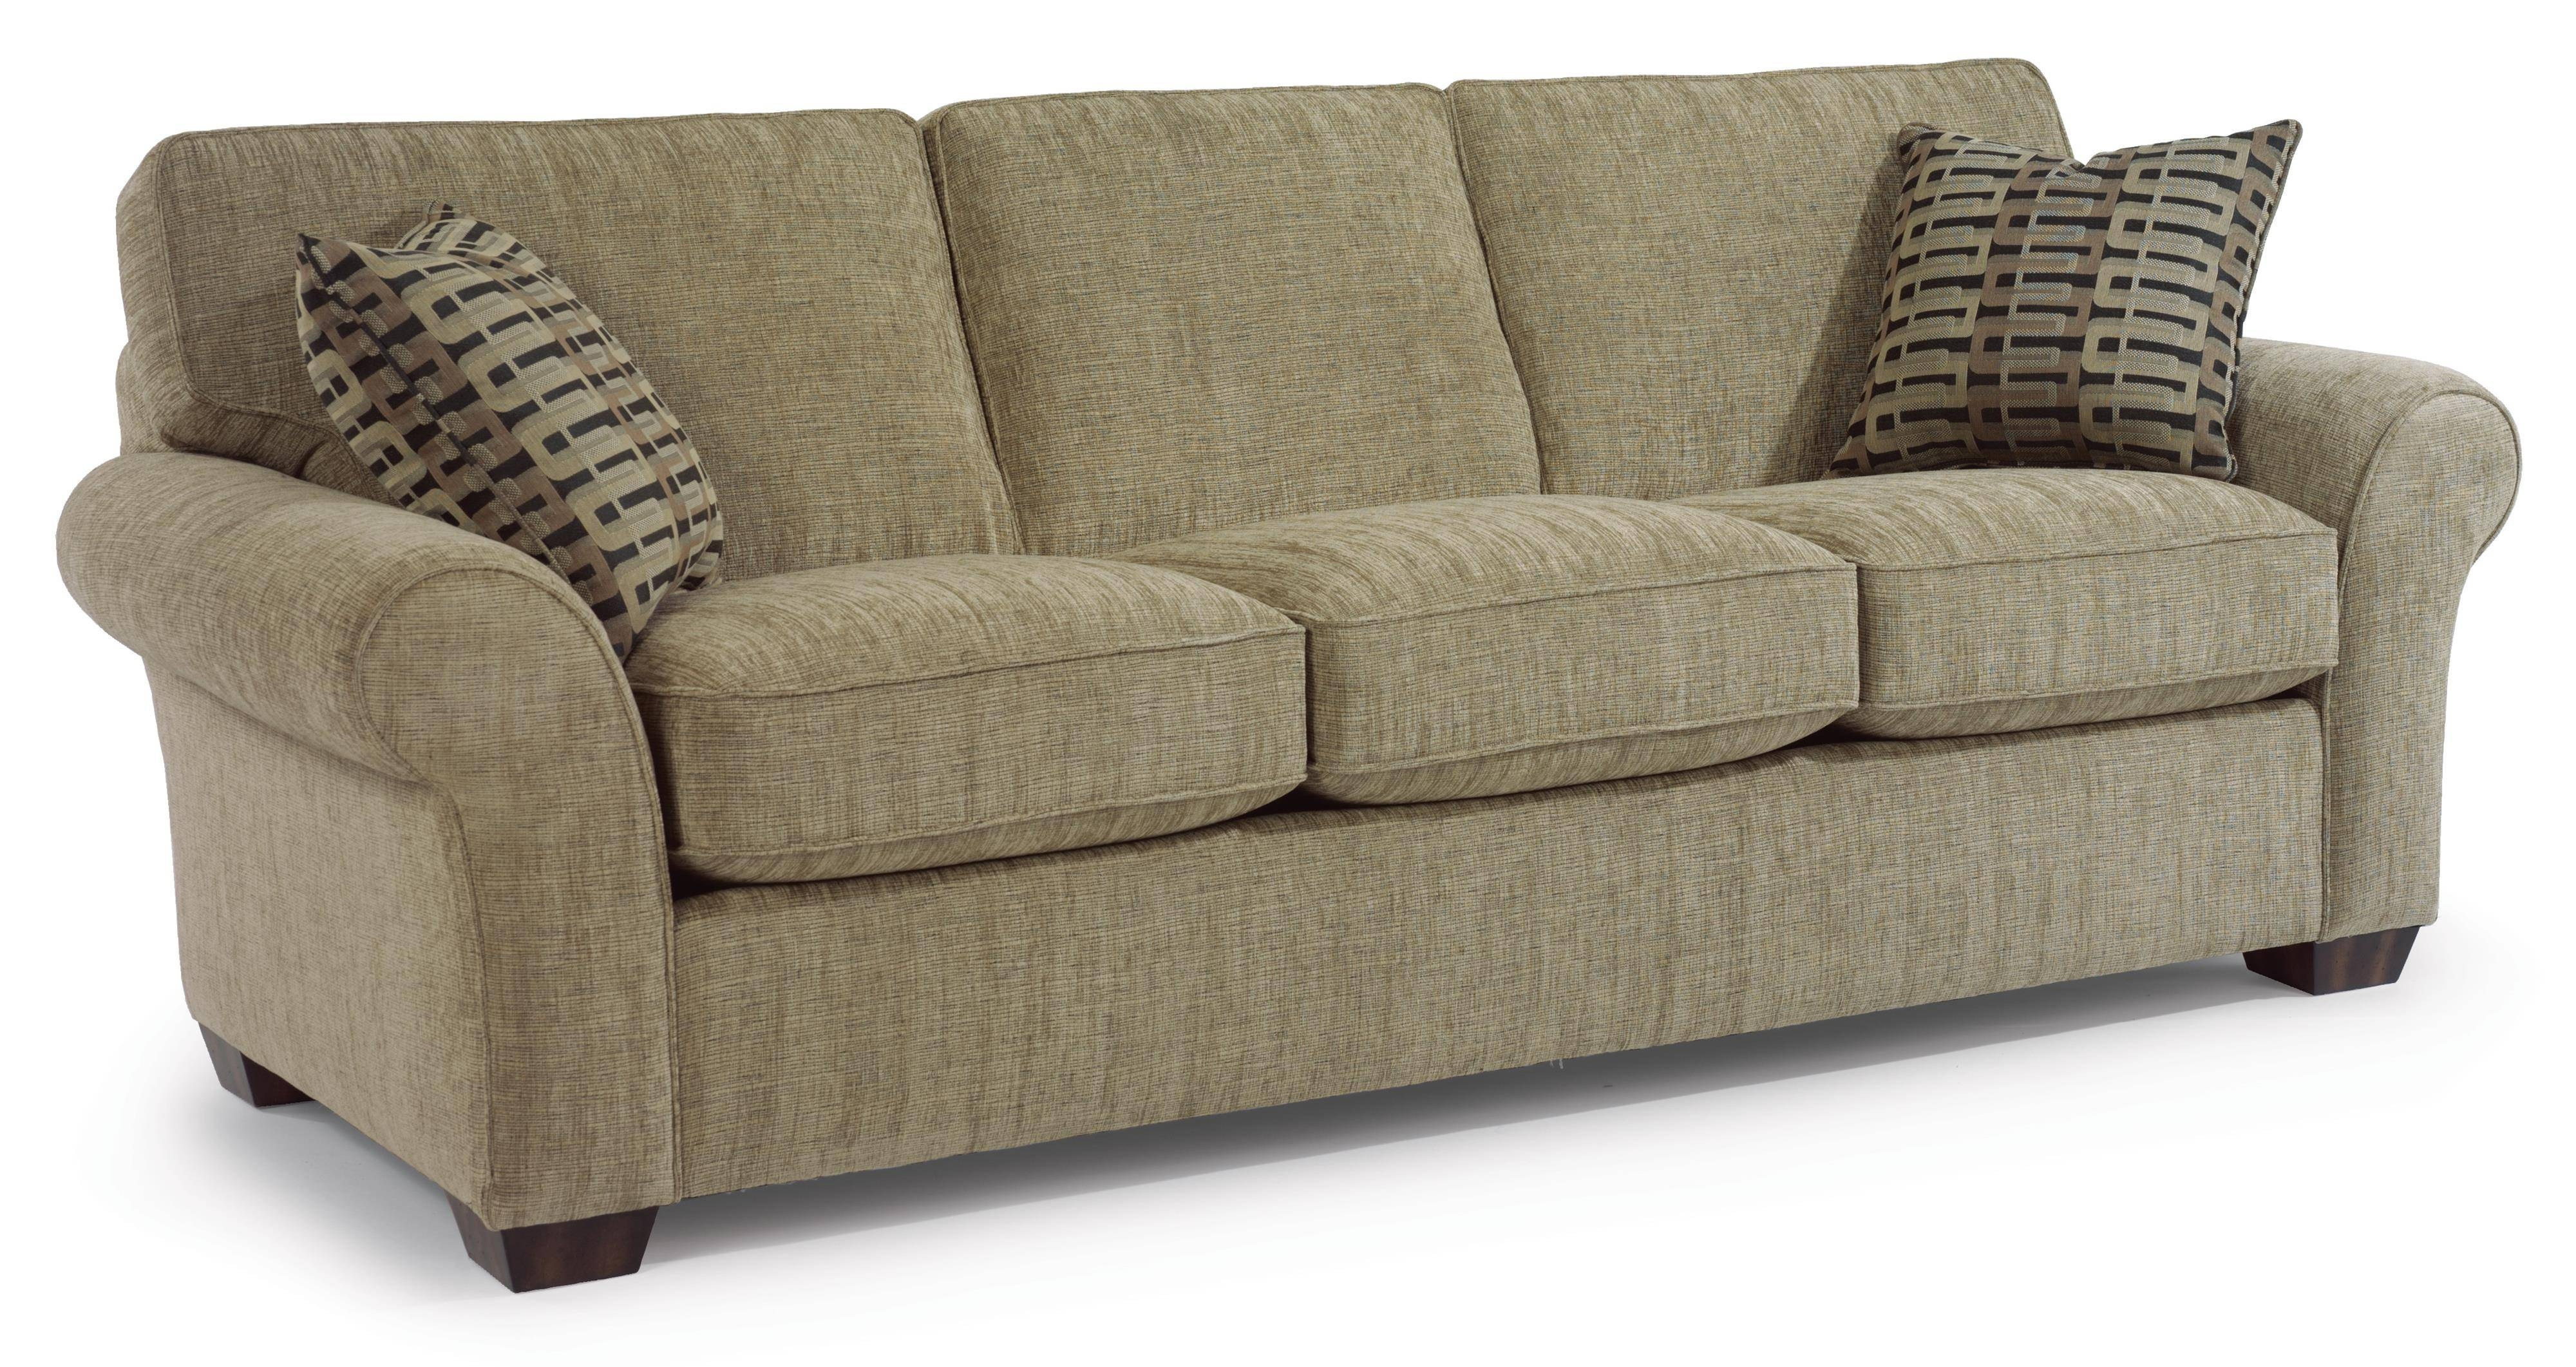 "Flexsteel Vail 91"" Vail Three Cushion Sofa - Wayside Furniture - Sofa throughout Cushion Sofa Beds (Image 7 of 30)"